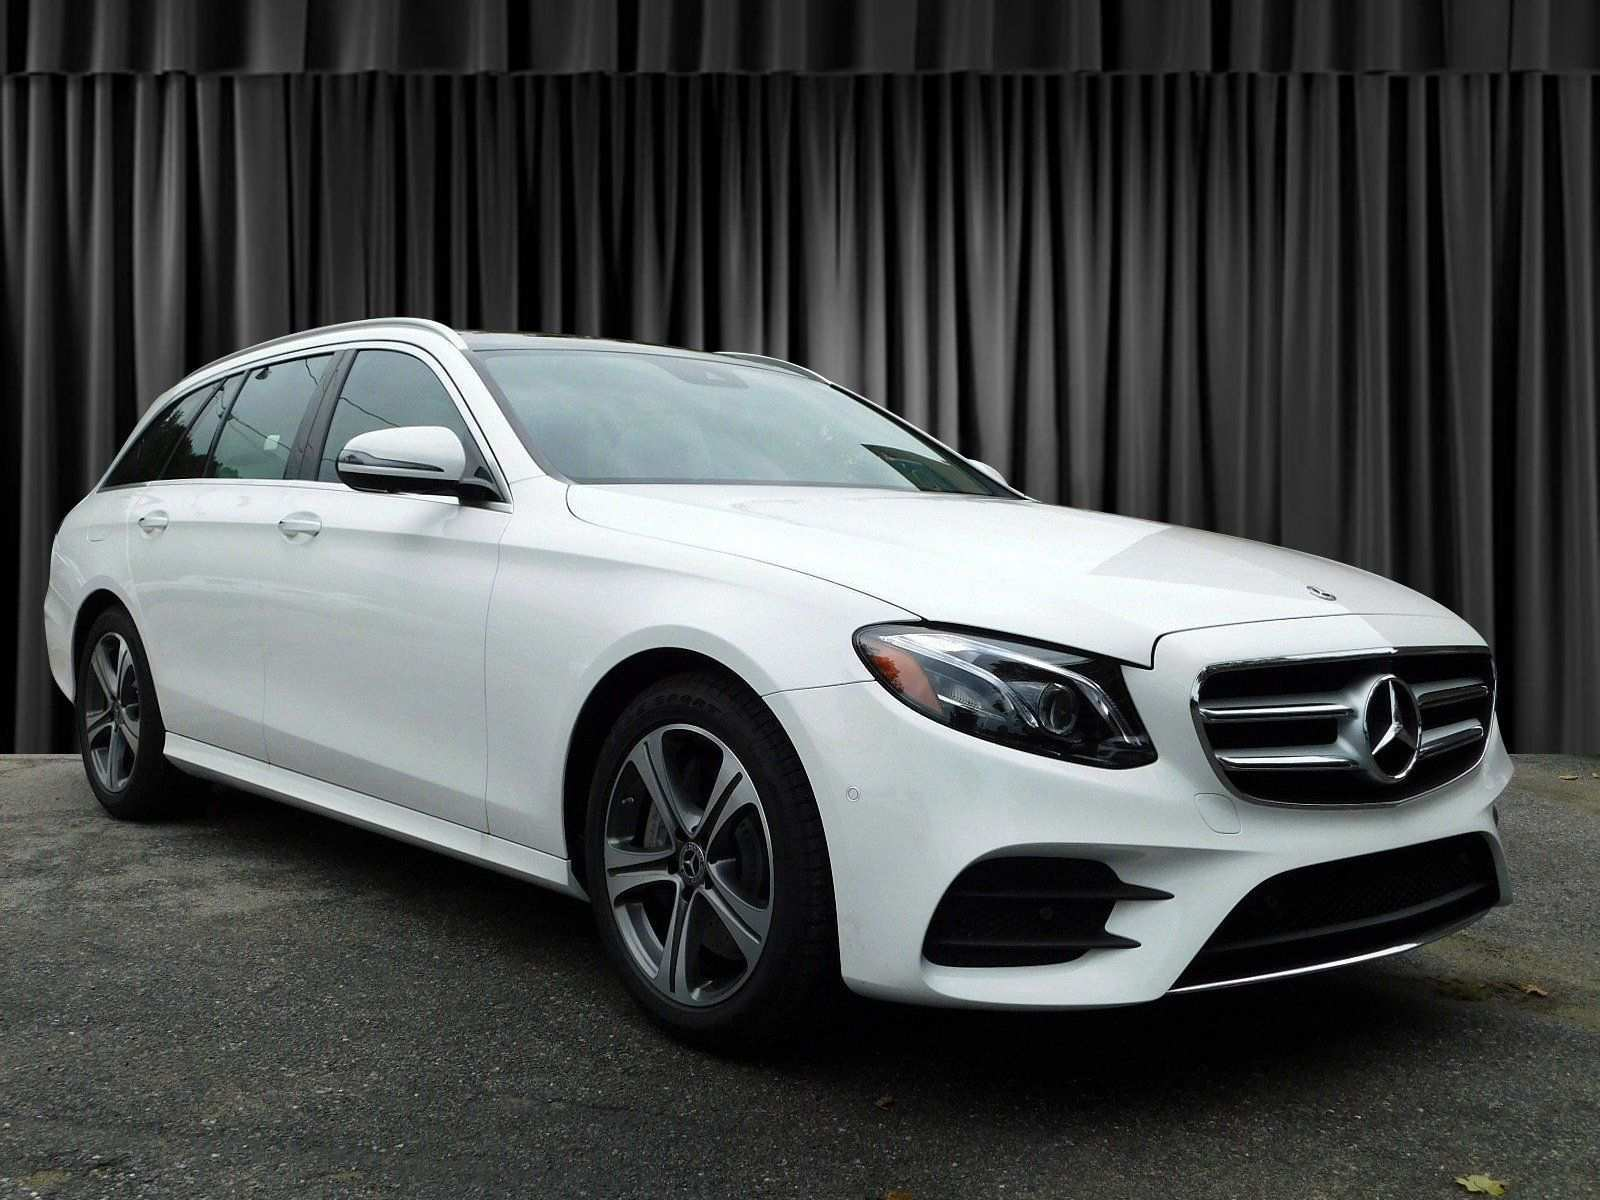 37 Best Review Best Mercedes 2019 Cars Engine Wallpaper for Best Mercedes 2019 Cars Engine